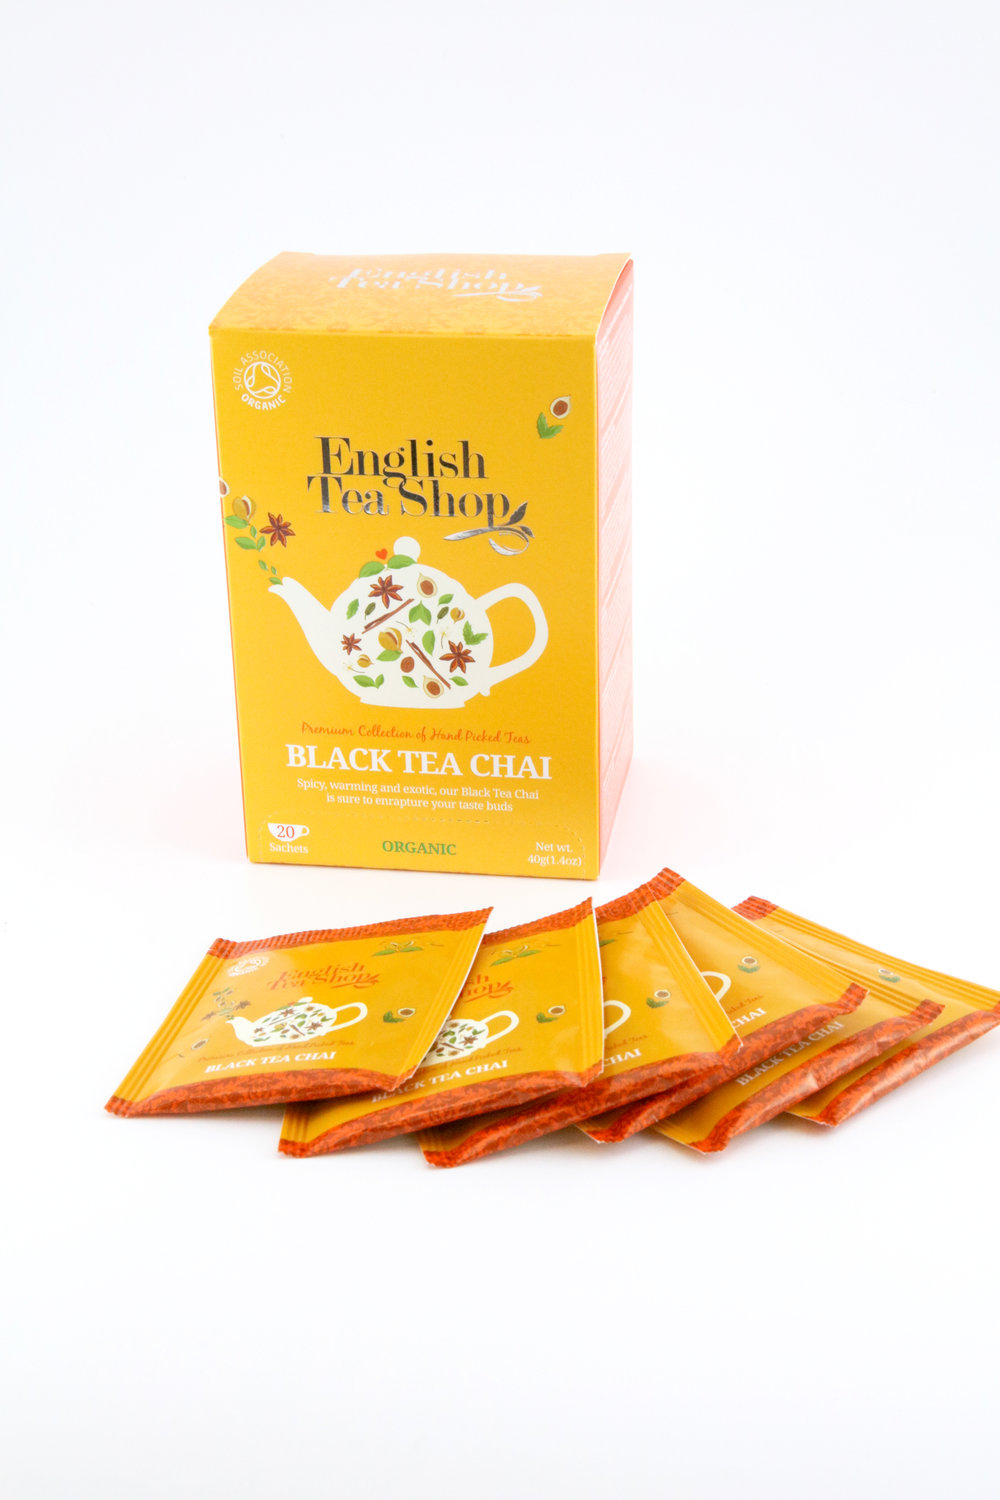 Therapeutic Item: English Tea Shop Tea   We know how important tea is. And we know how important it is to go right to the source. That's why we founded English Tea Shop, to bring you superb tea from the heart of Sri Lanka. Our tea is hand packed. We care deeply about the way our tea is grown and harvested.  CHAMOMILE LAVENDER   BLACK TEA CHAI